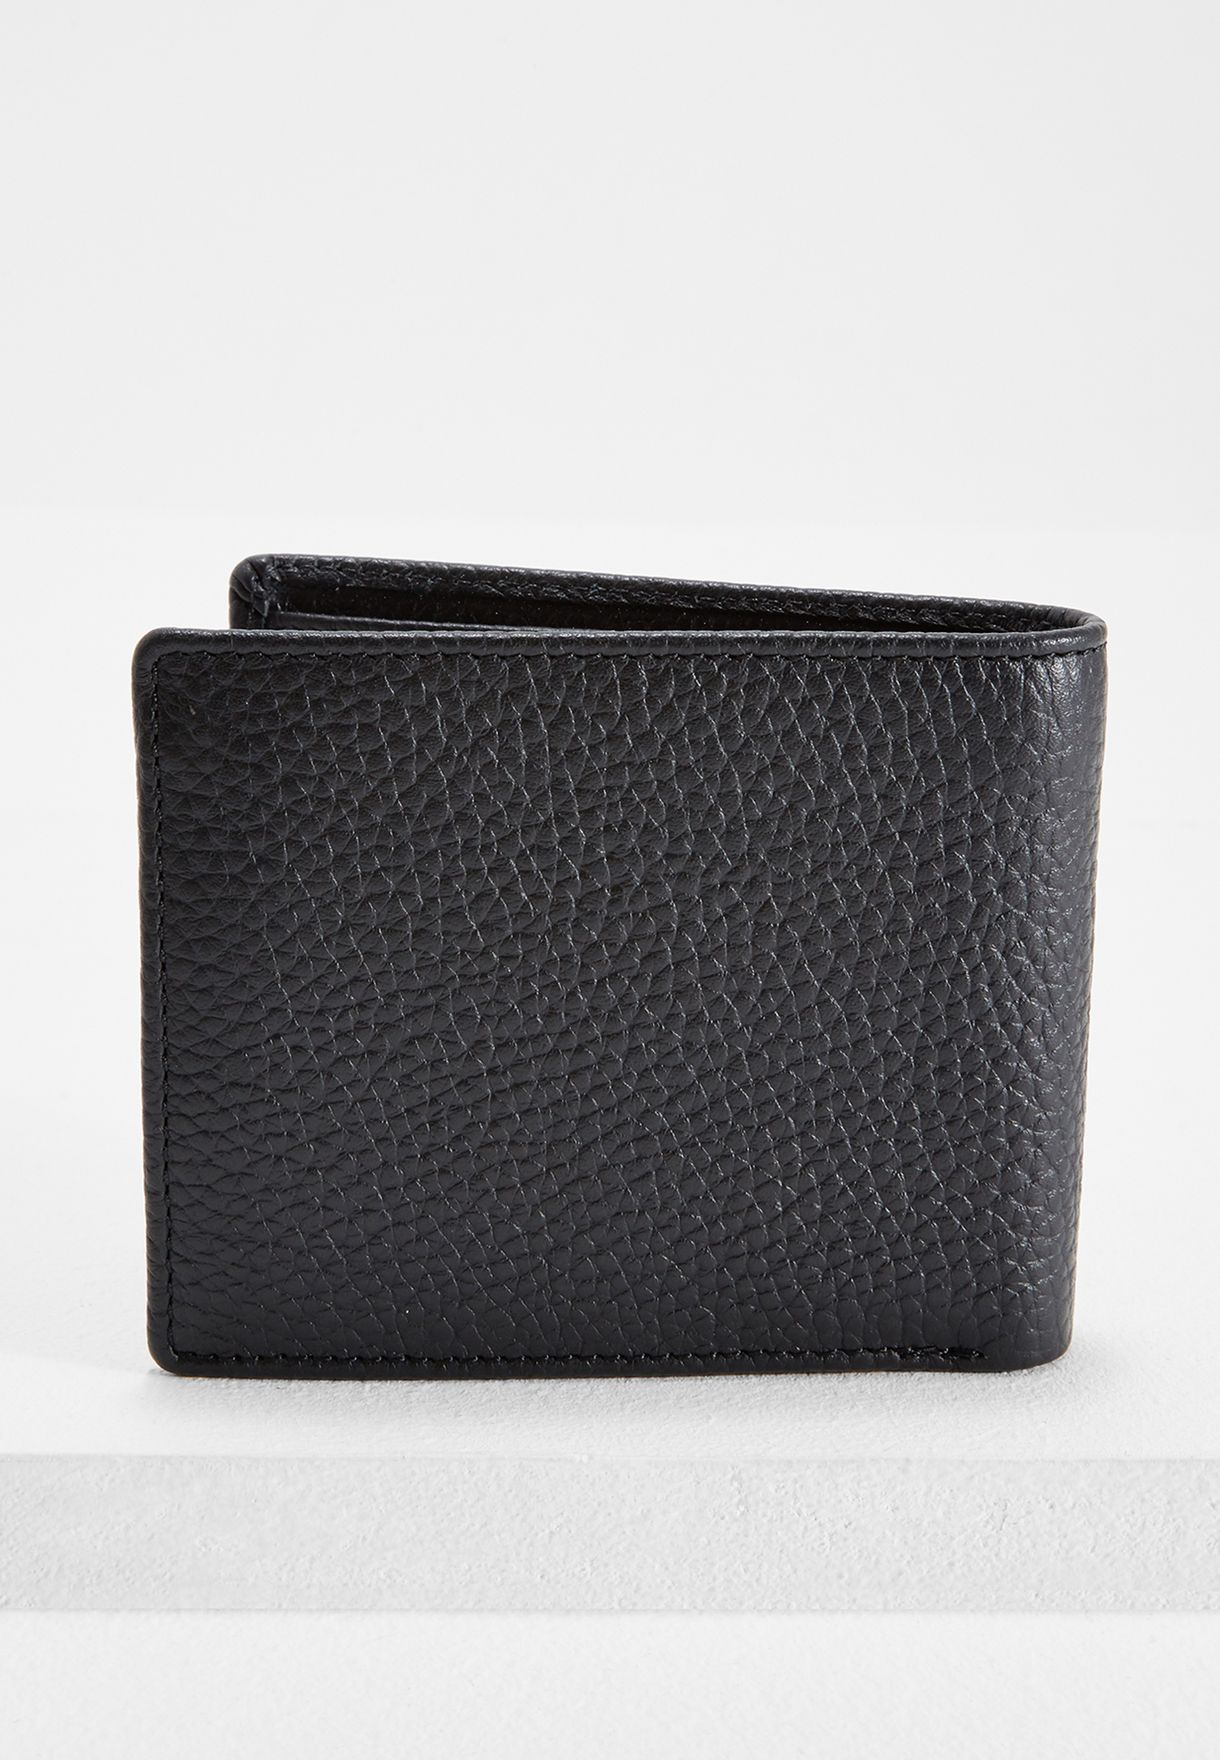 Shop Beverly Hills Polo Club black Leather Wallet BP W9123 for Men ... b5309470a3be3